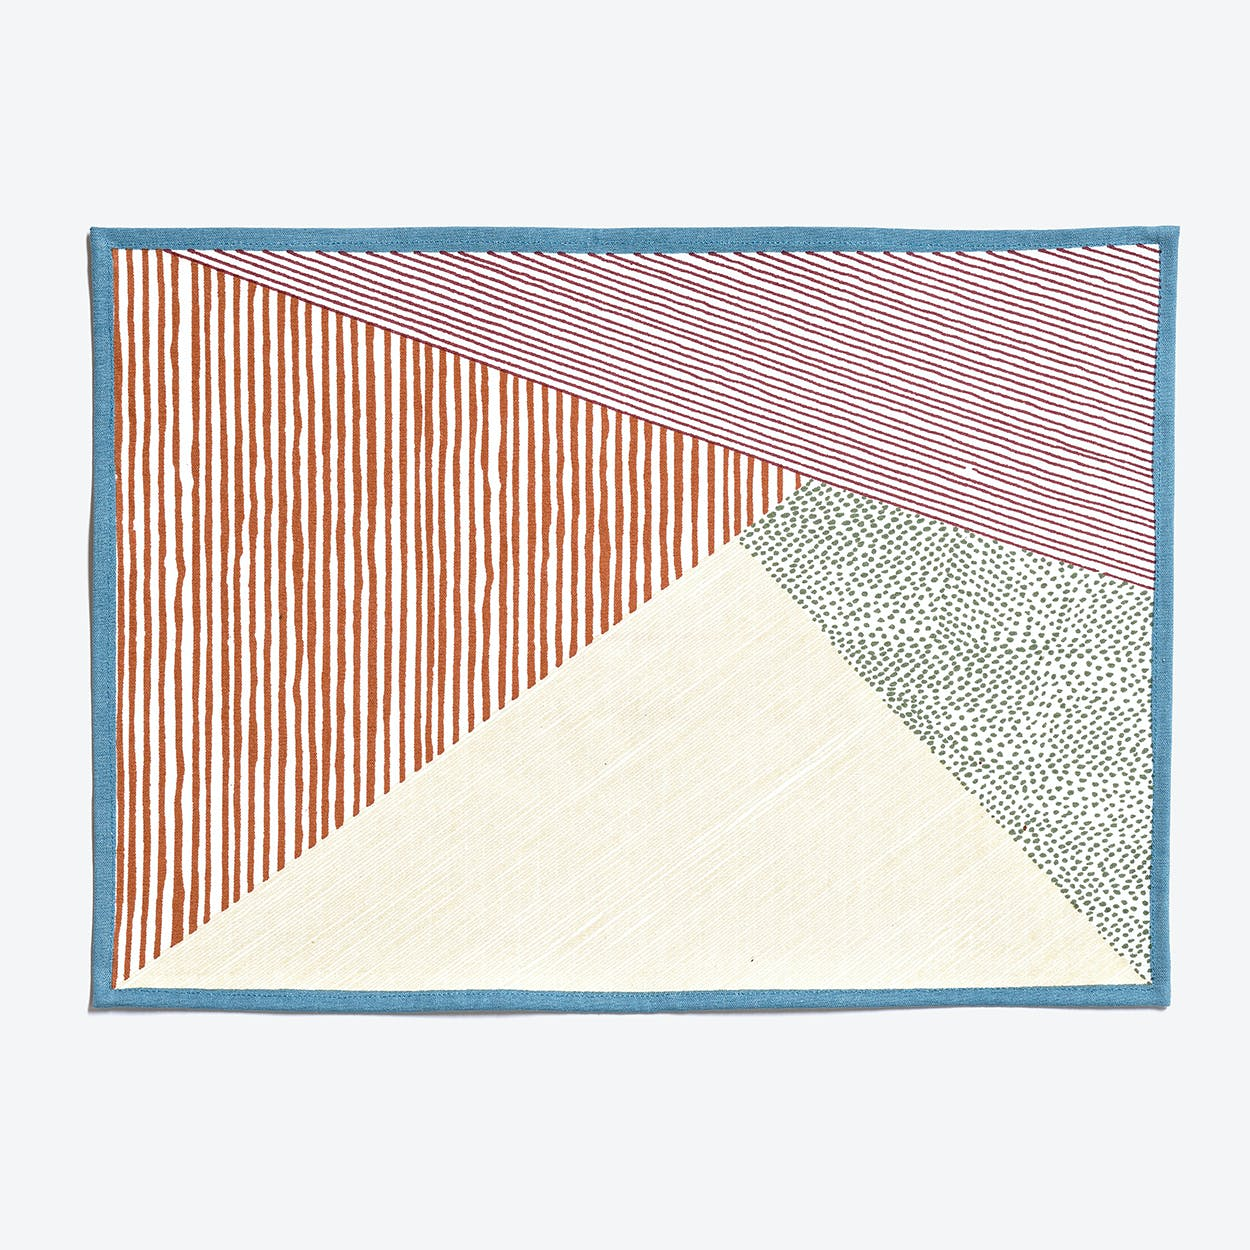 Zephyr Placemat (set of 6)